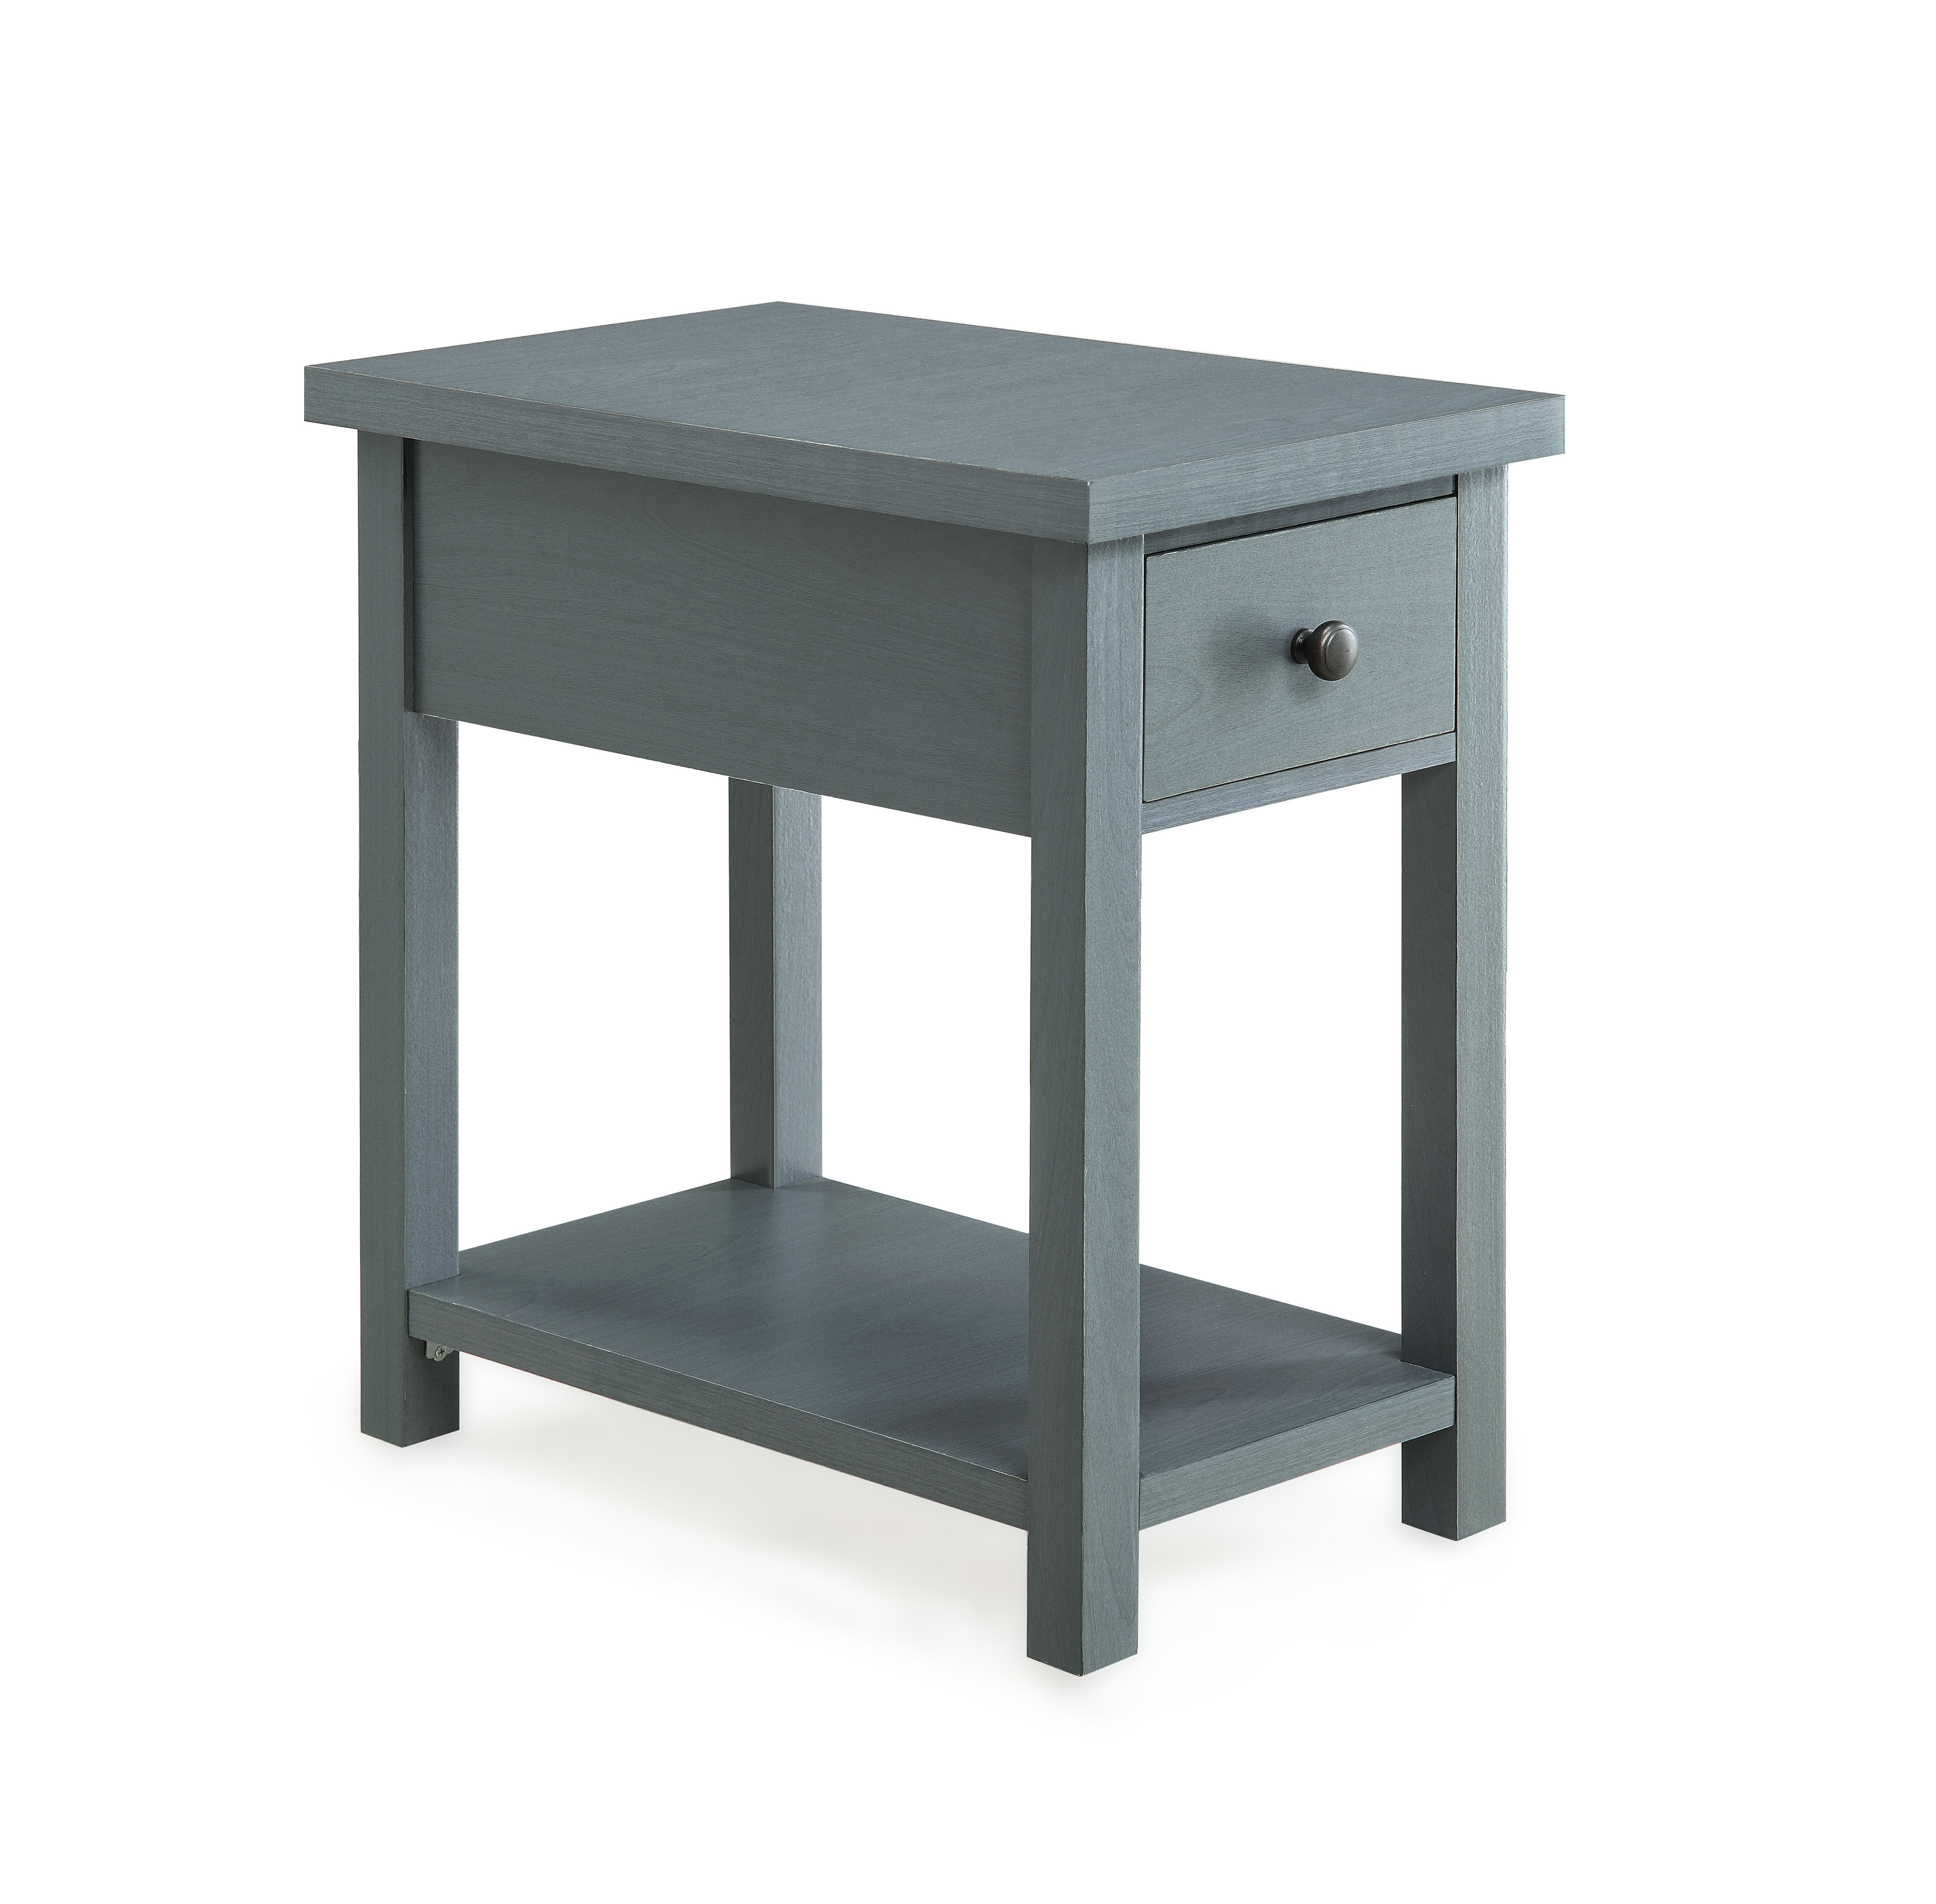 Outdoor Accent Tables Clearance Grottepastenaecollepardo